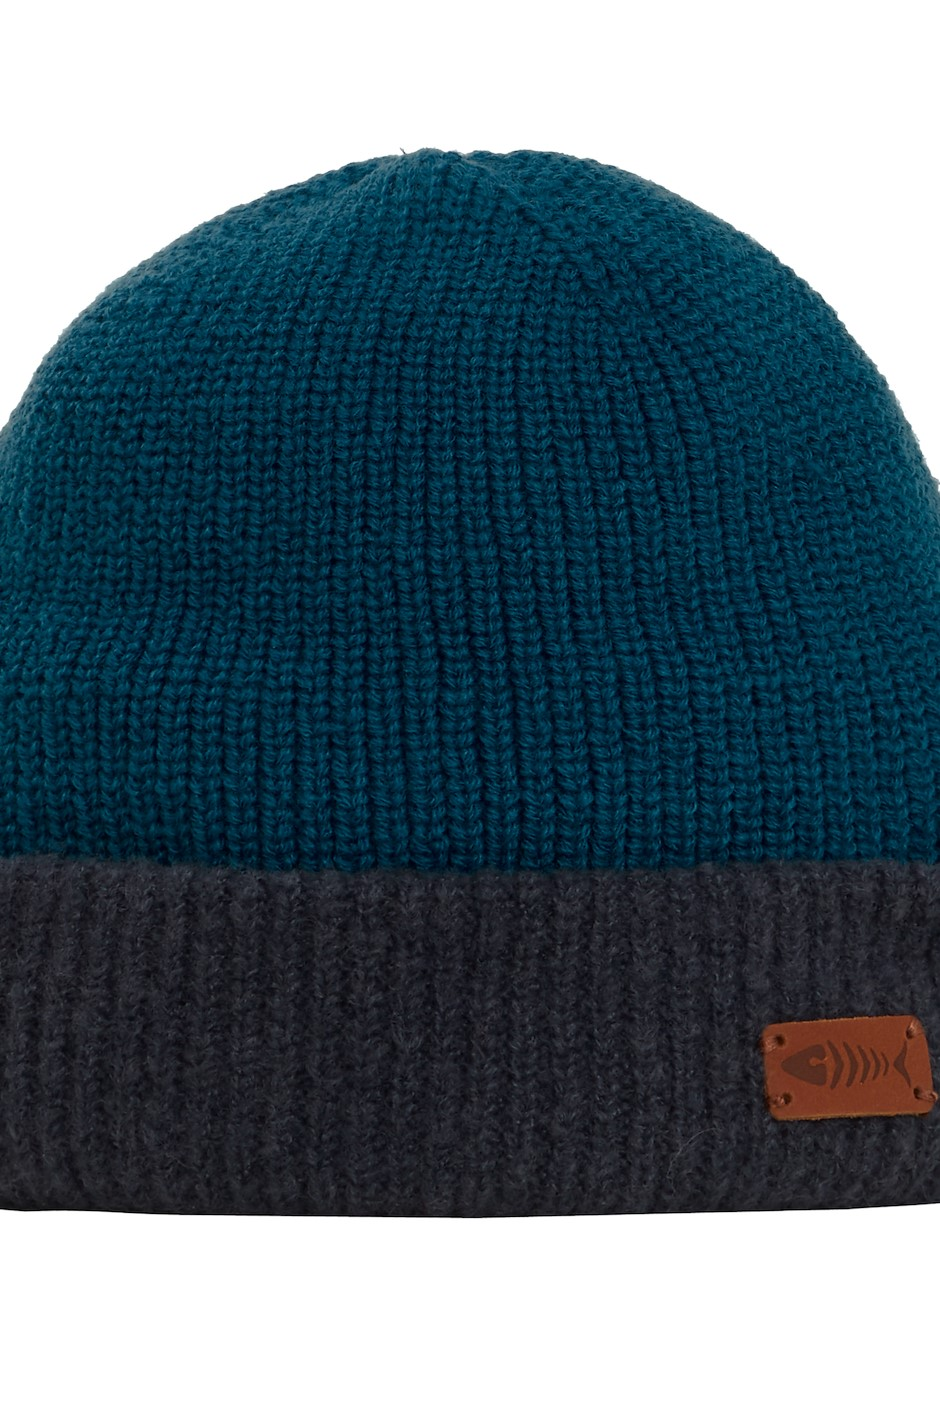 Yukon Reversible Beanie Hat Navy